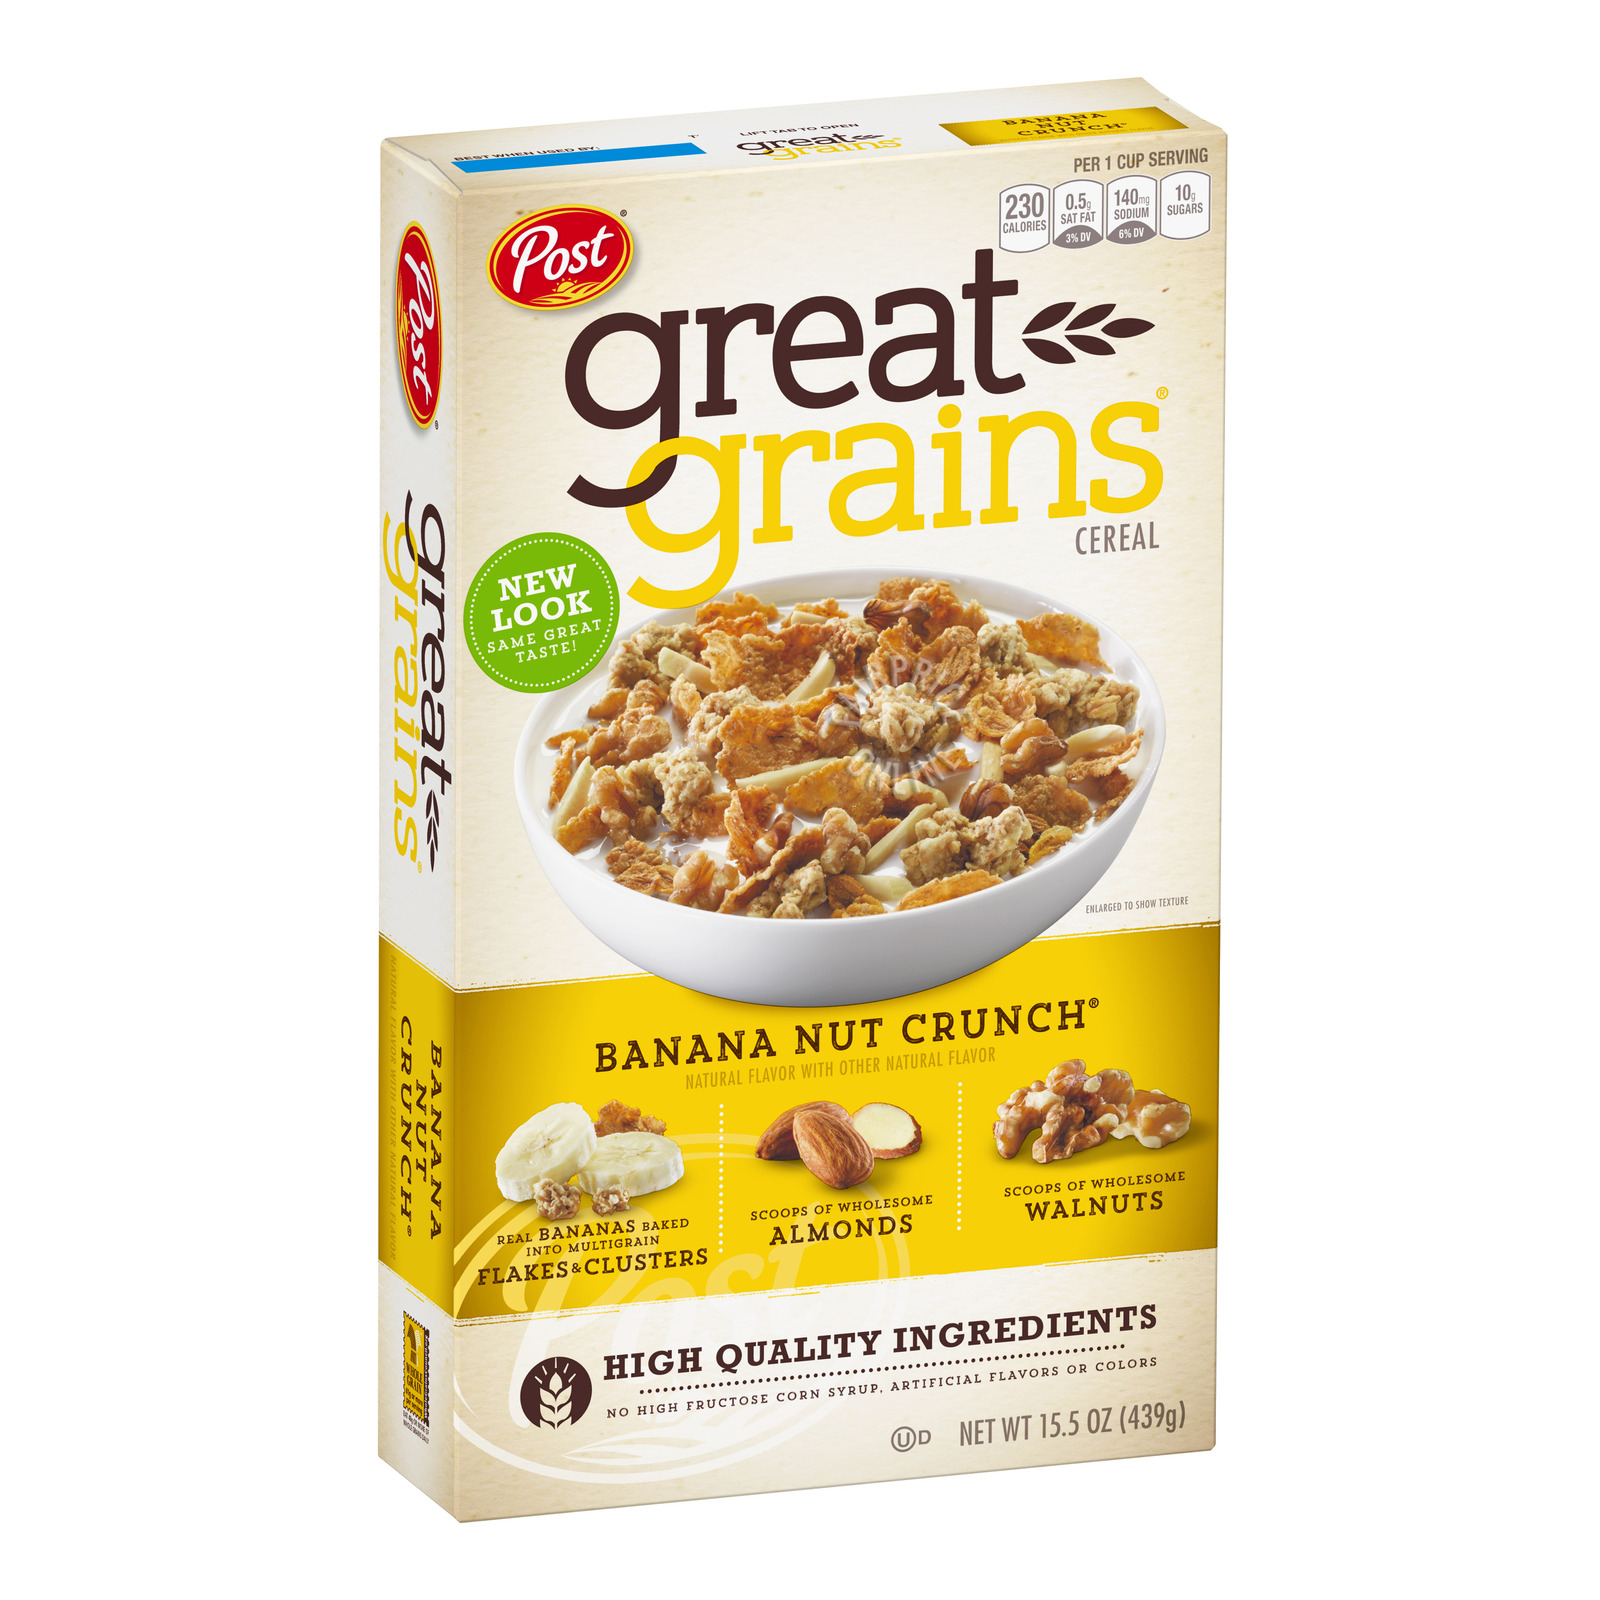 Post Selects Great Grains Banana Nut Crunch Whole Grain Cereal